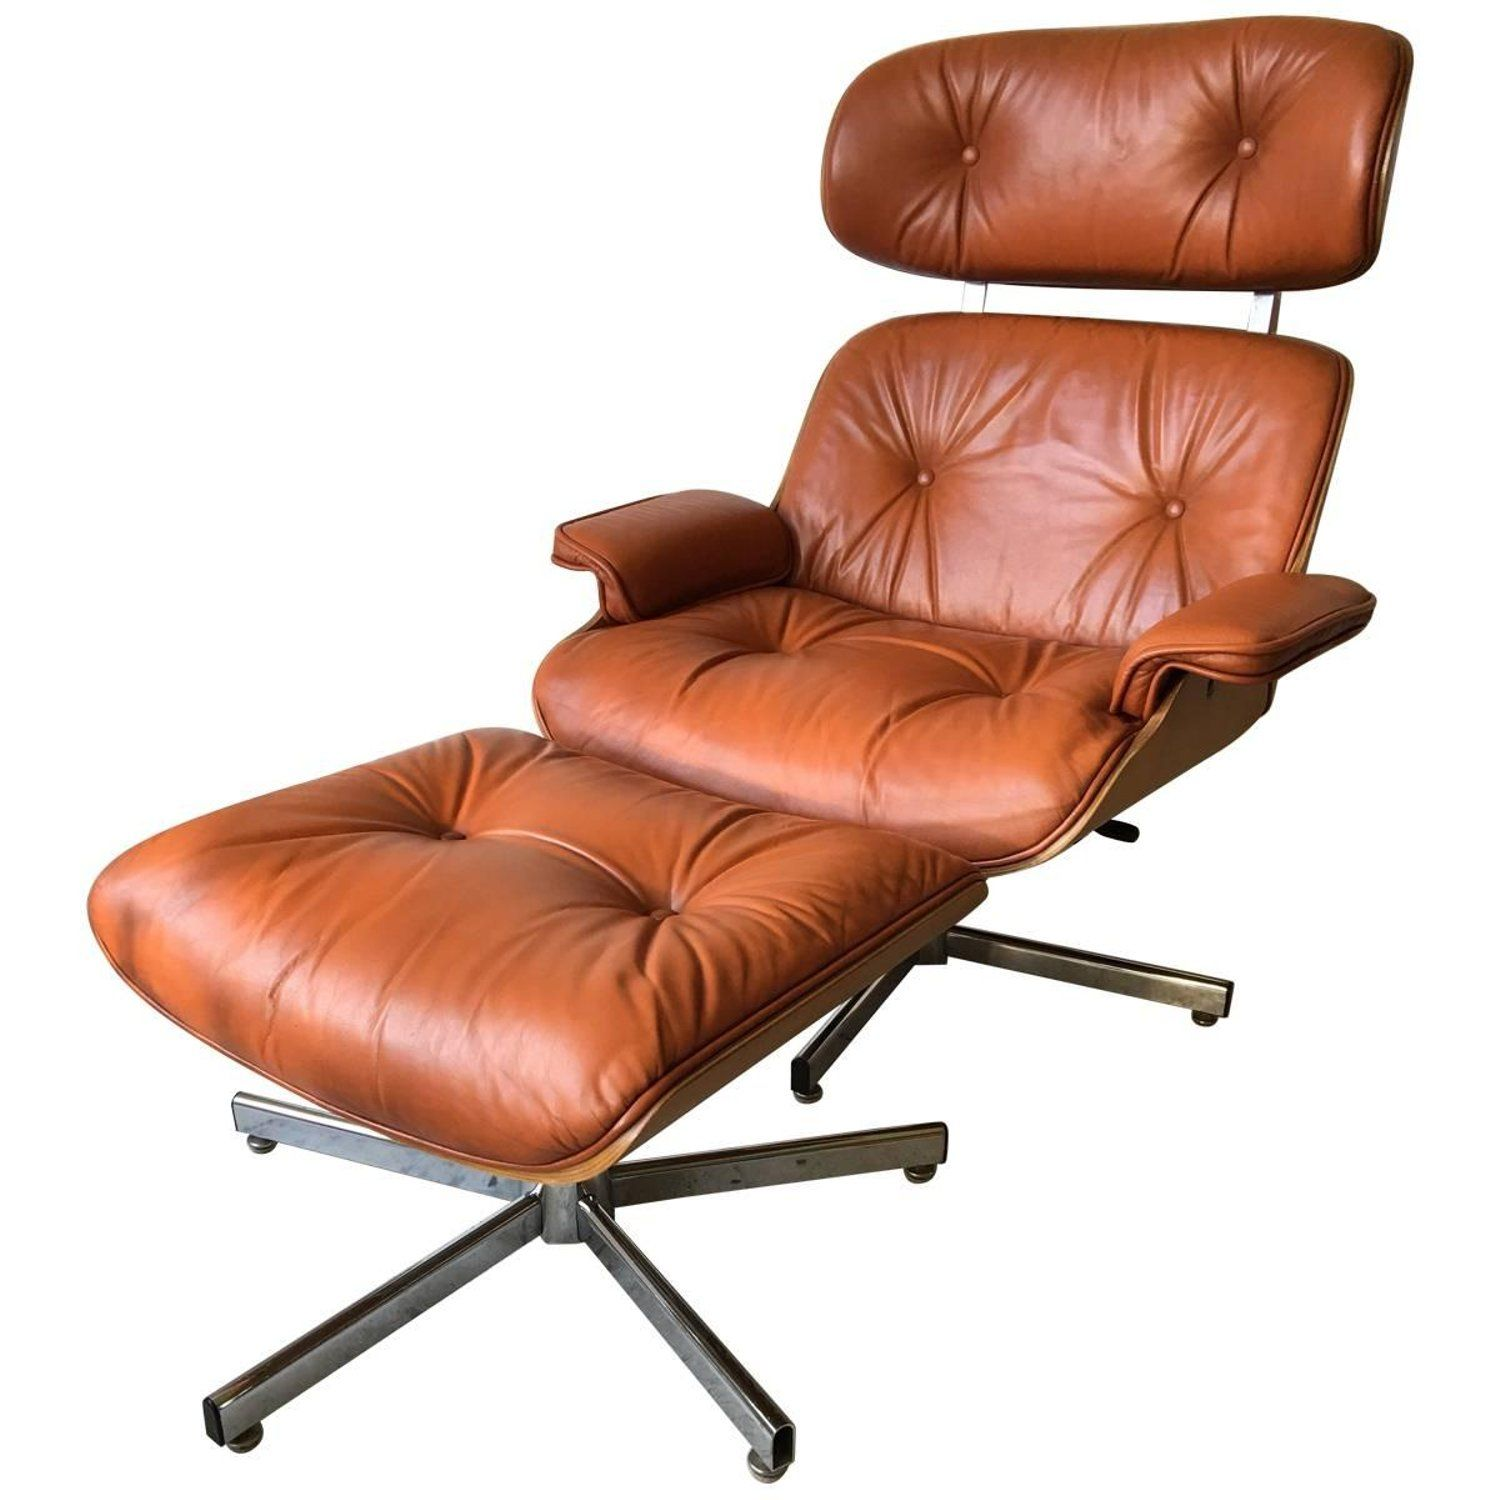 Vintage Italian Eames Style Lounge Chair Ottoman Set in